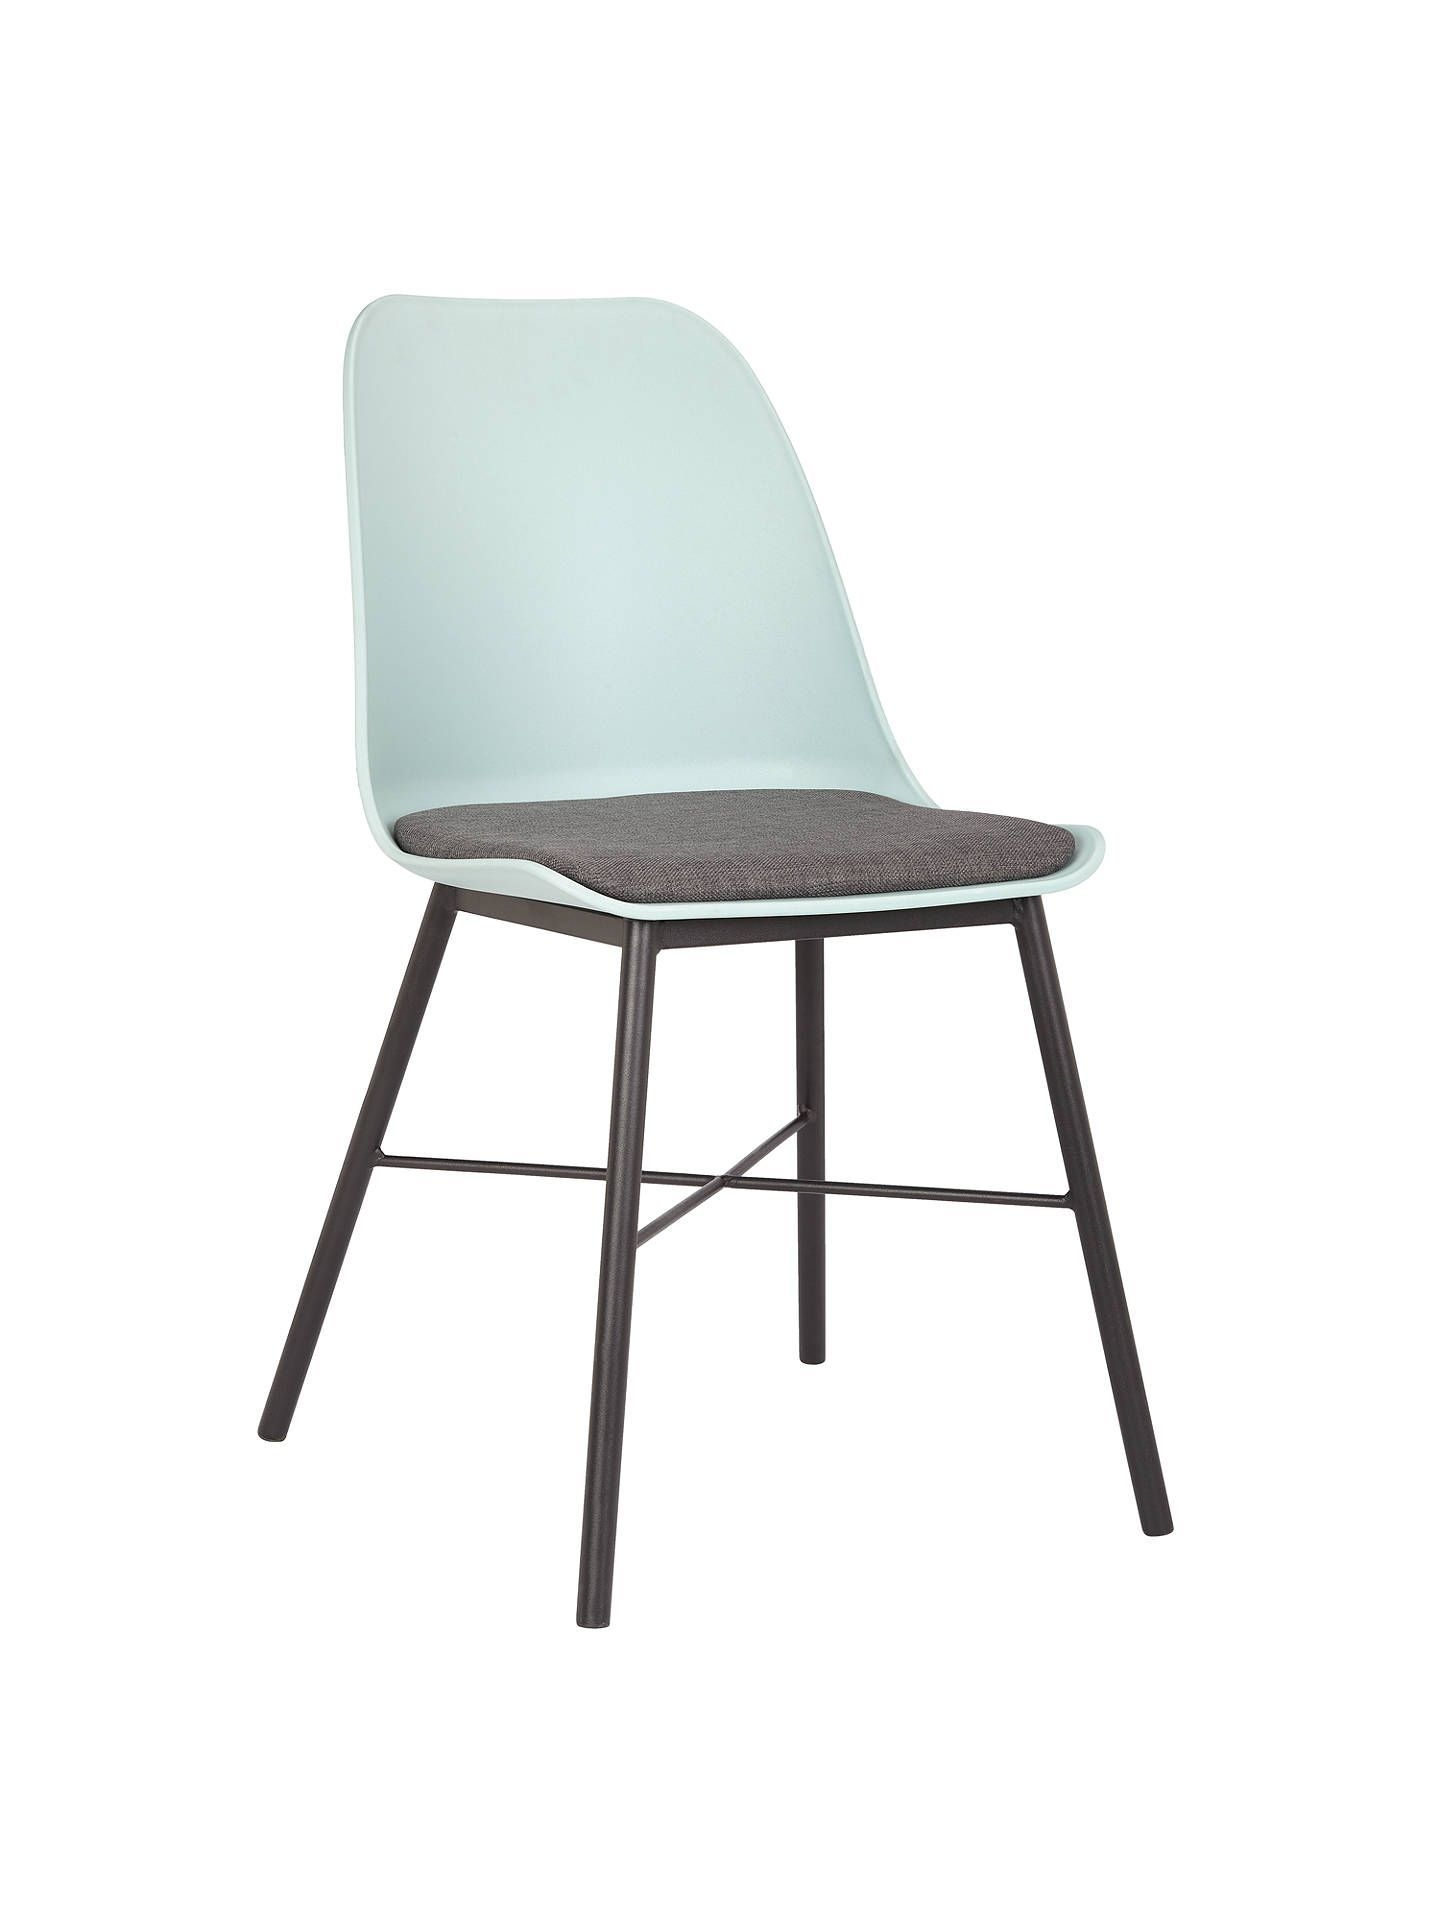 Housejohn Lewis Whistler Dining Chair Mineral Blue  Dining Chairs John Lewis Dining